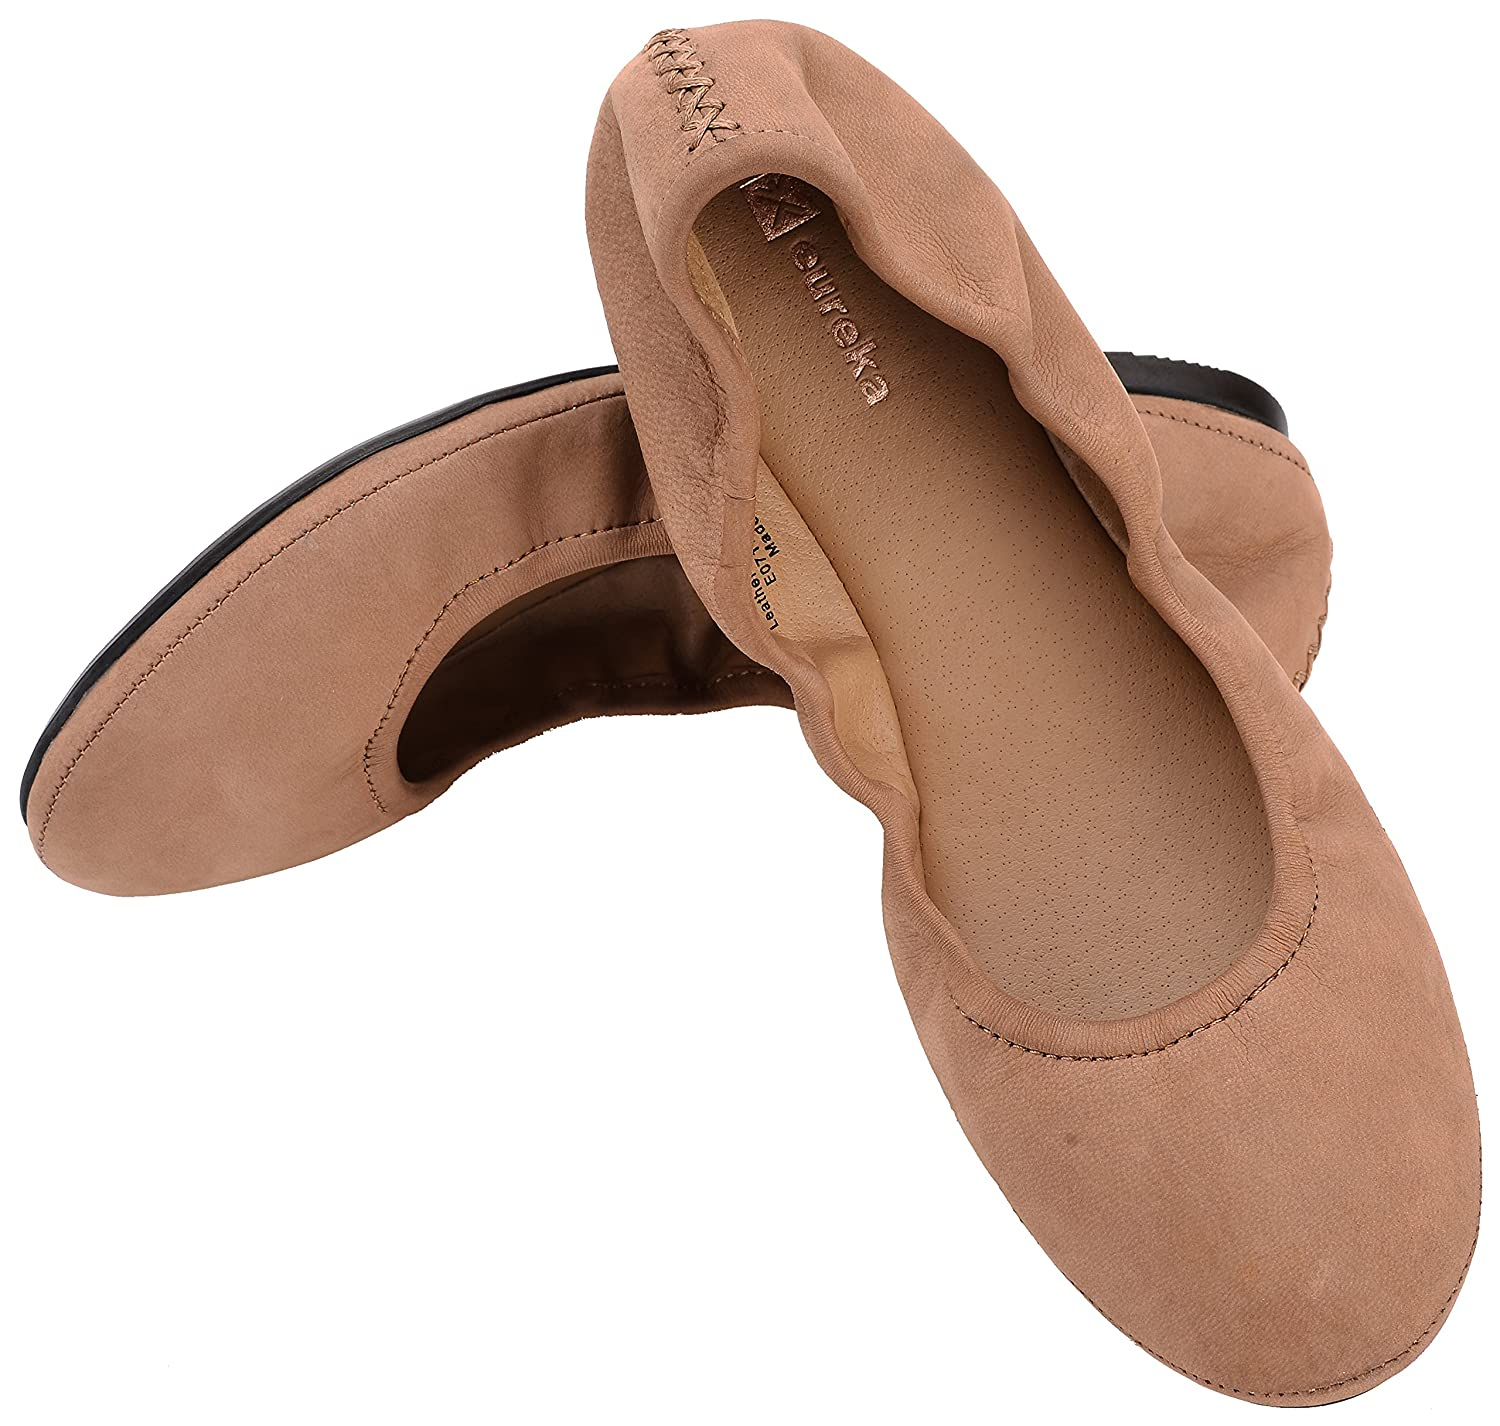 Eureka USA Women's Audrey Leather Ballet Flat B07BZZG3Z1 10 B(M) US|814 Stucco Cocoa